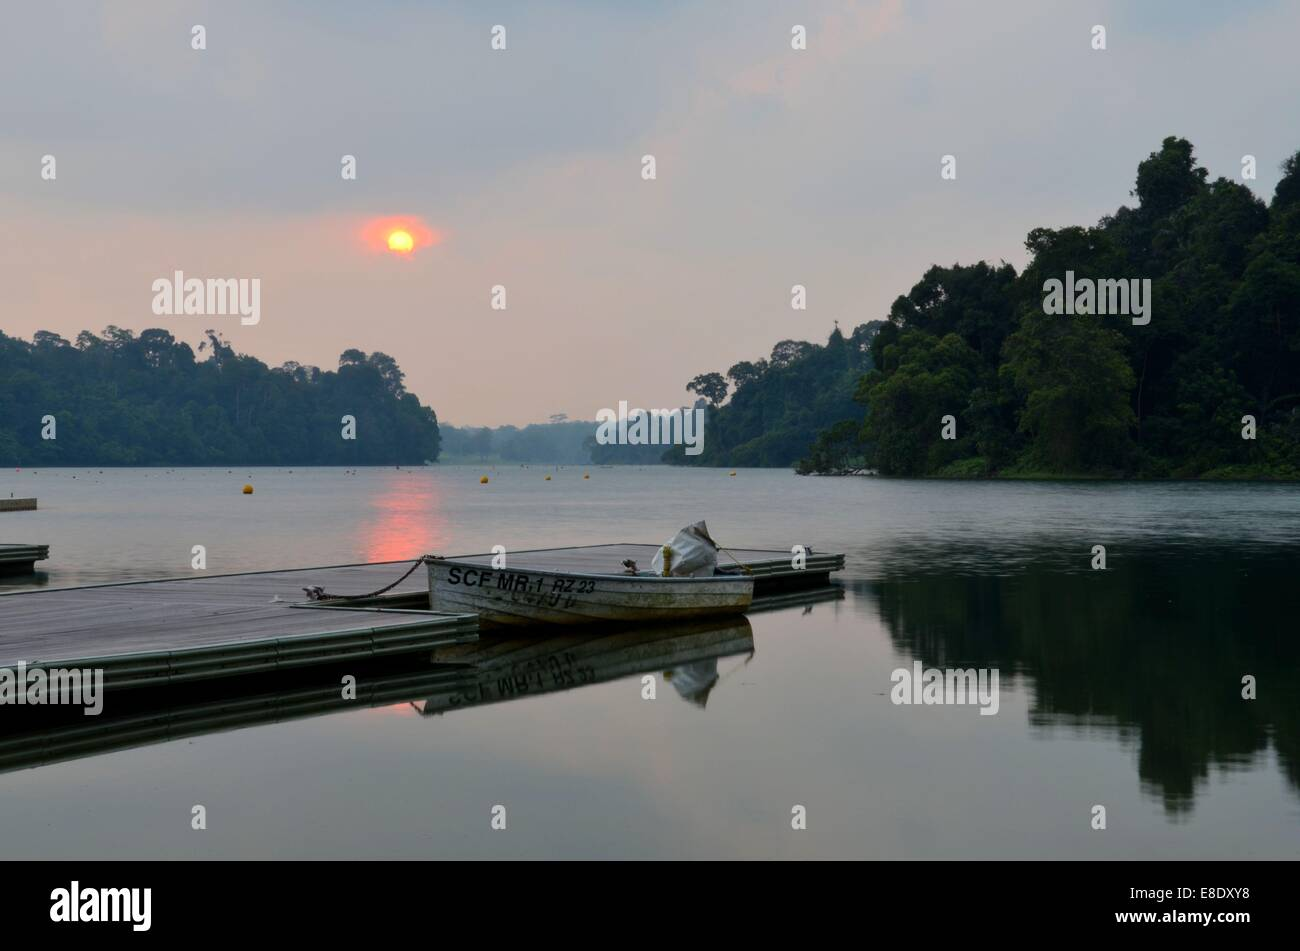 Sunset at Singapore MacRitchie Reservoir lake pier with parked boat in foreground - Stock Image